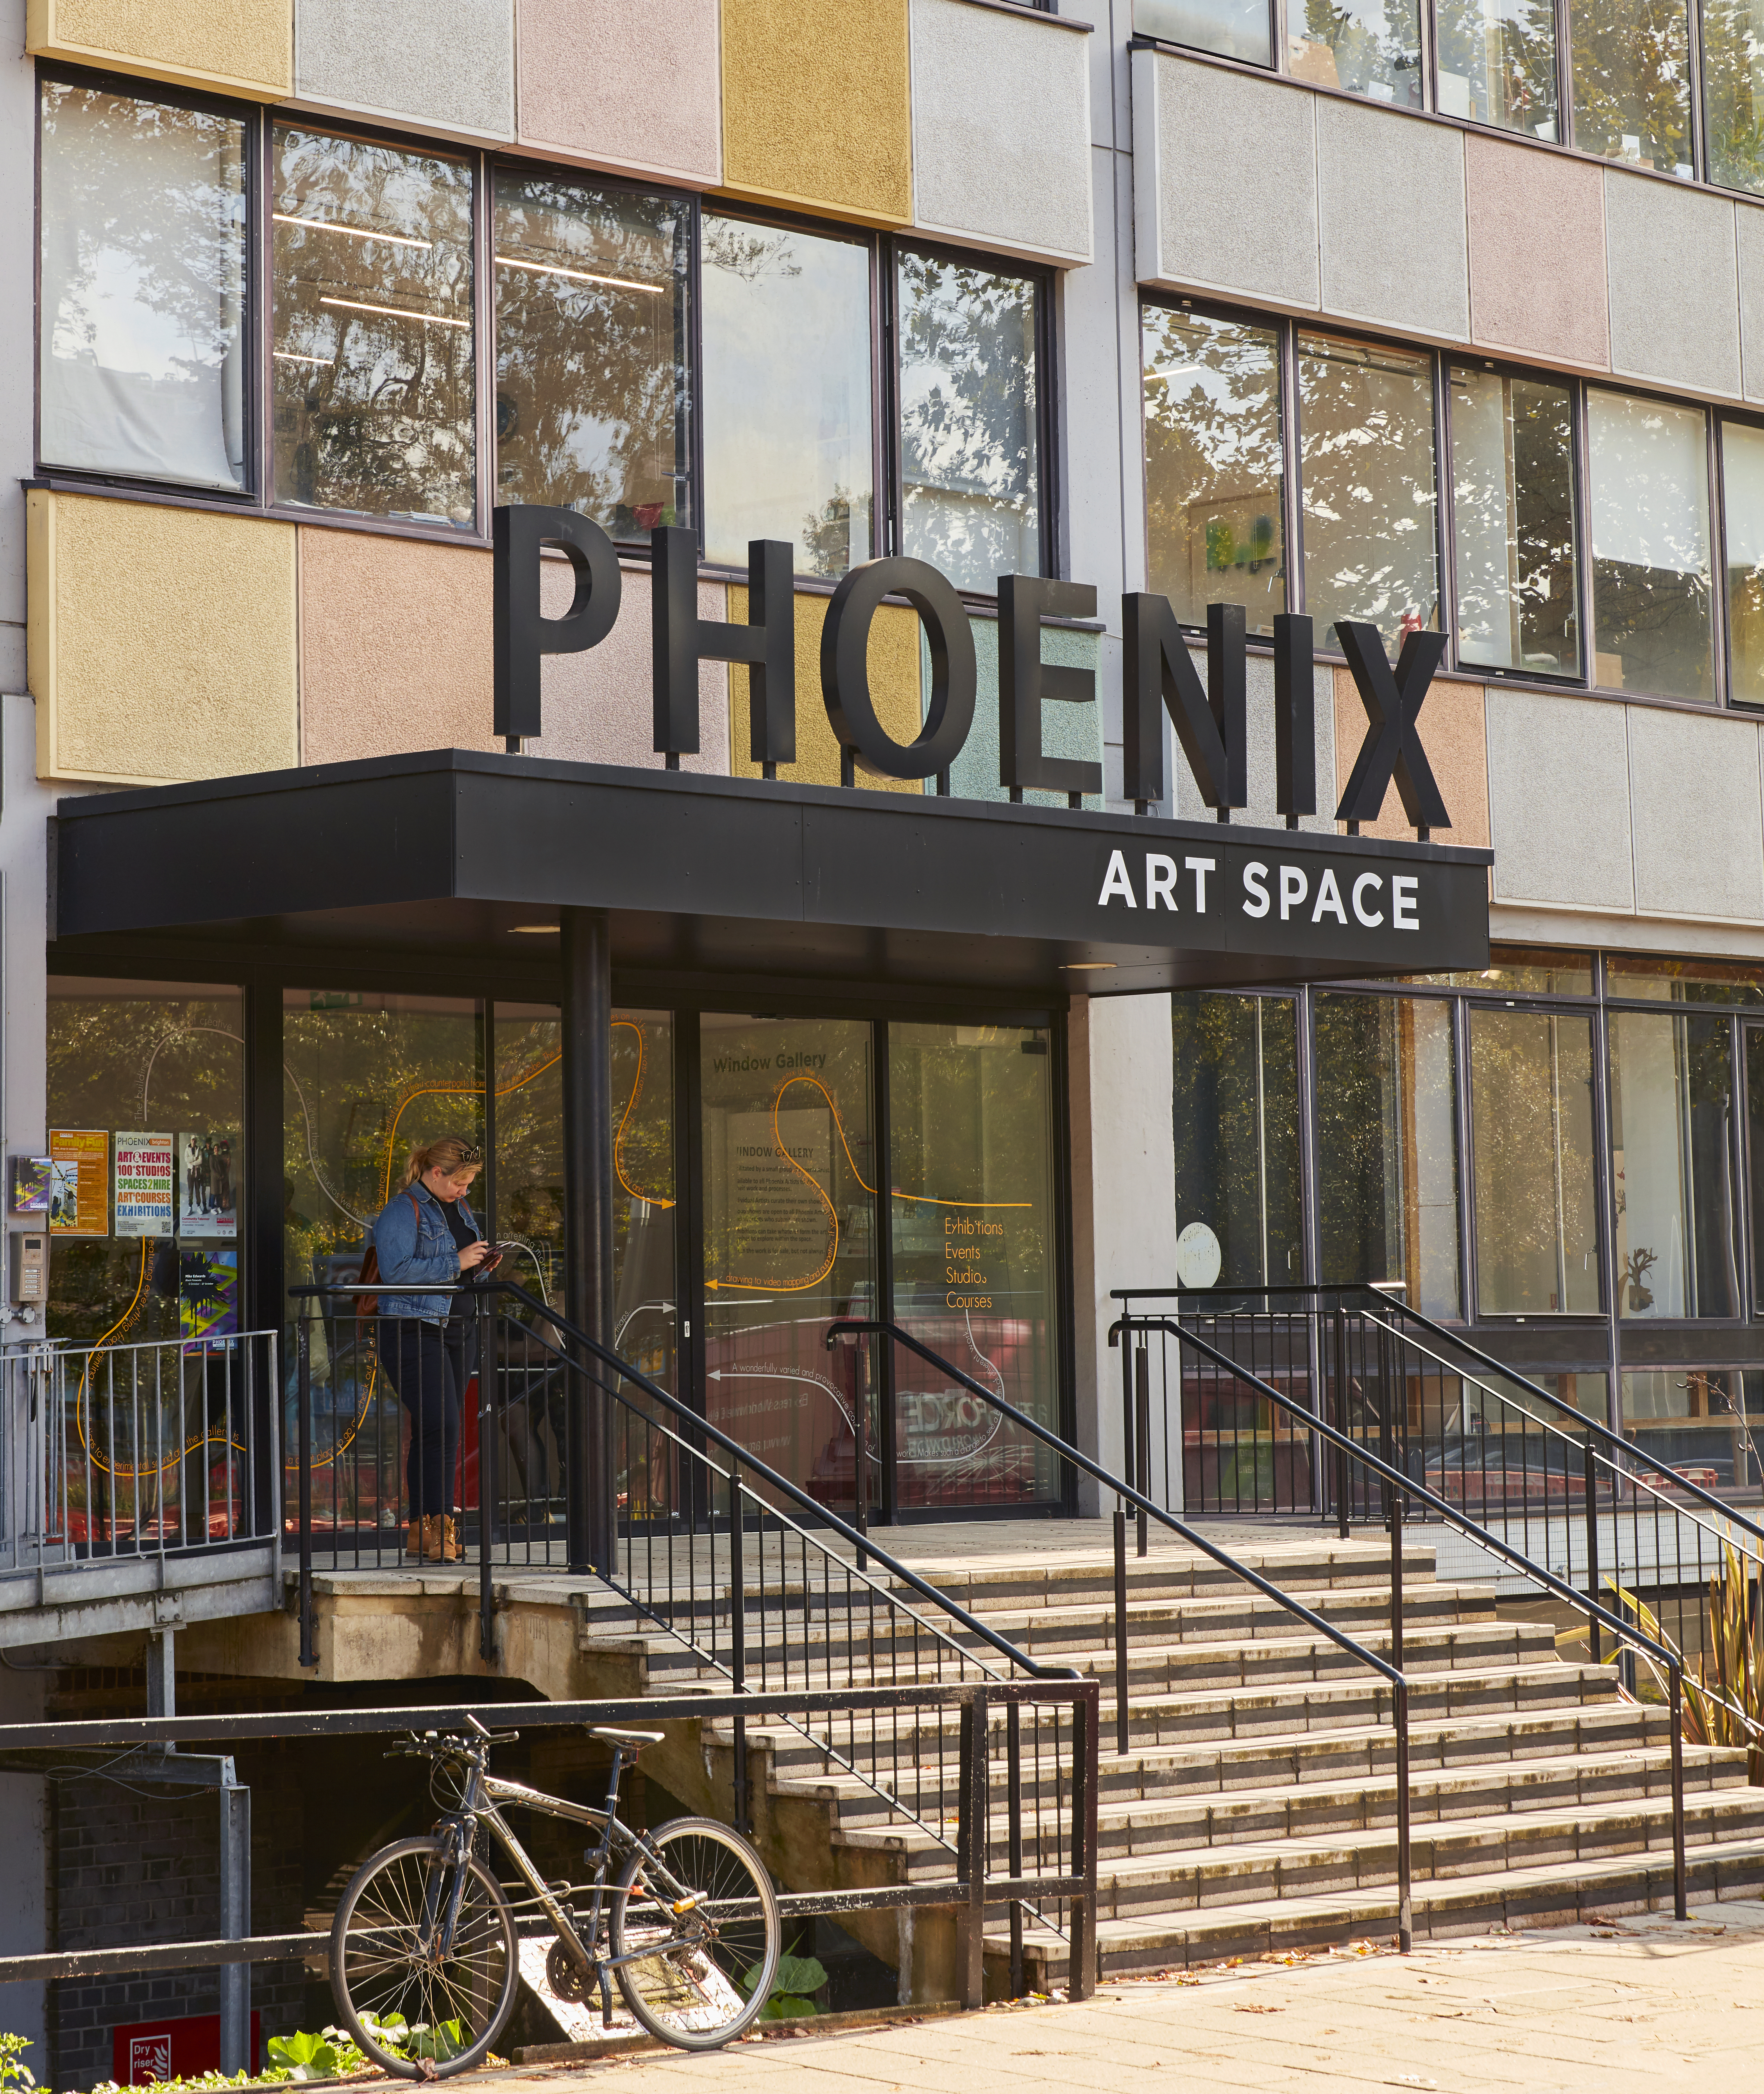 The entrance to the Phoenix Art Space